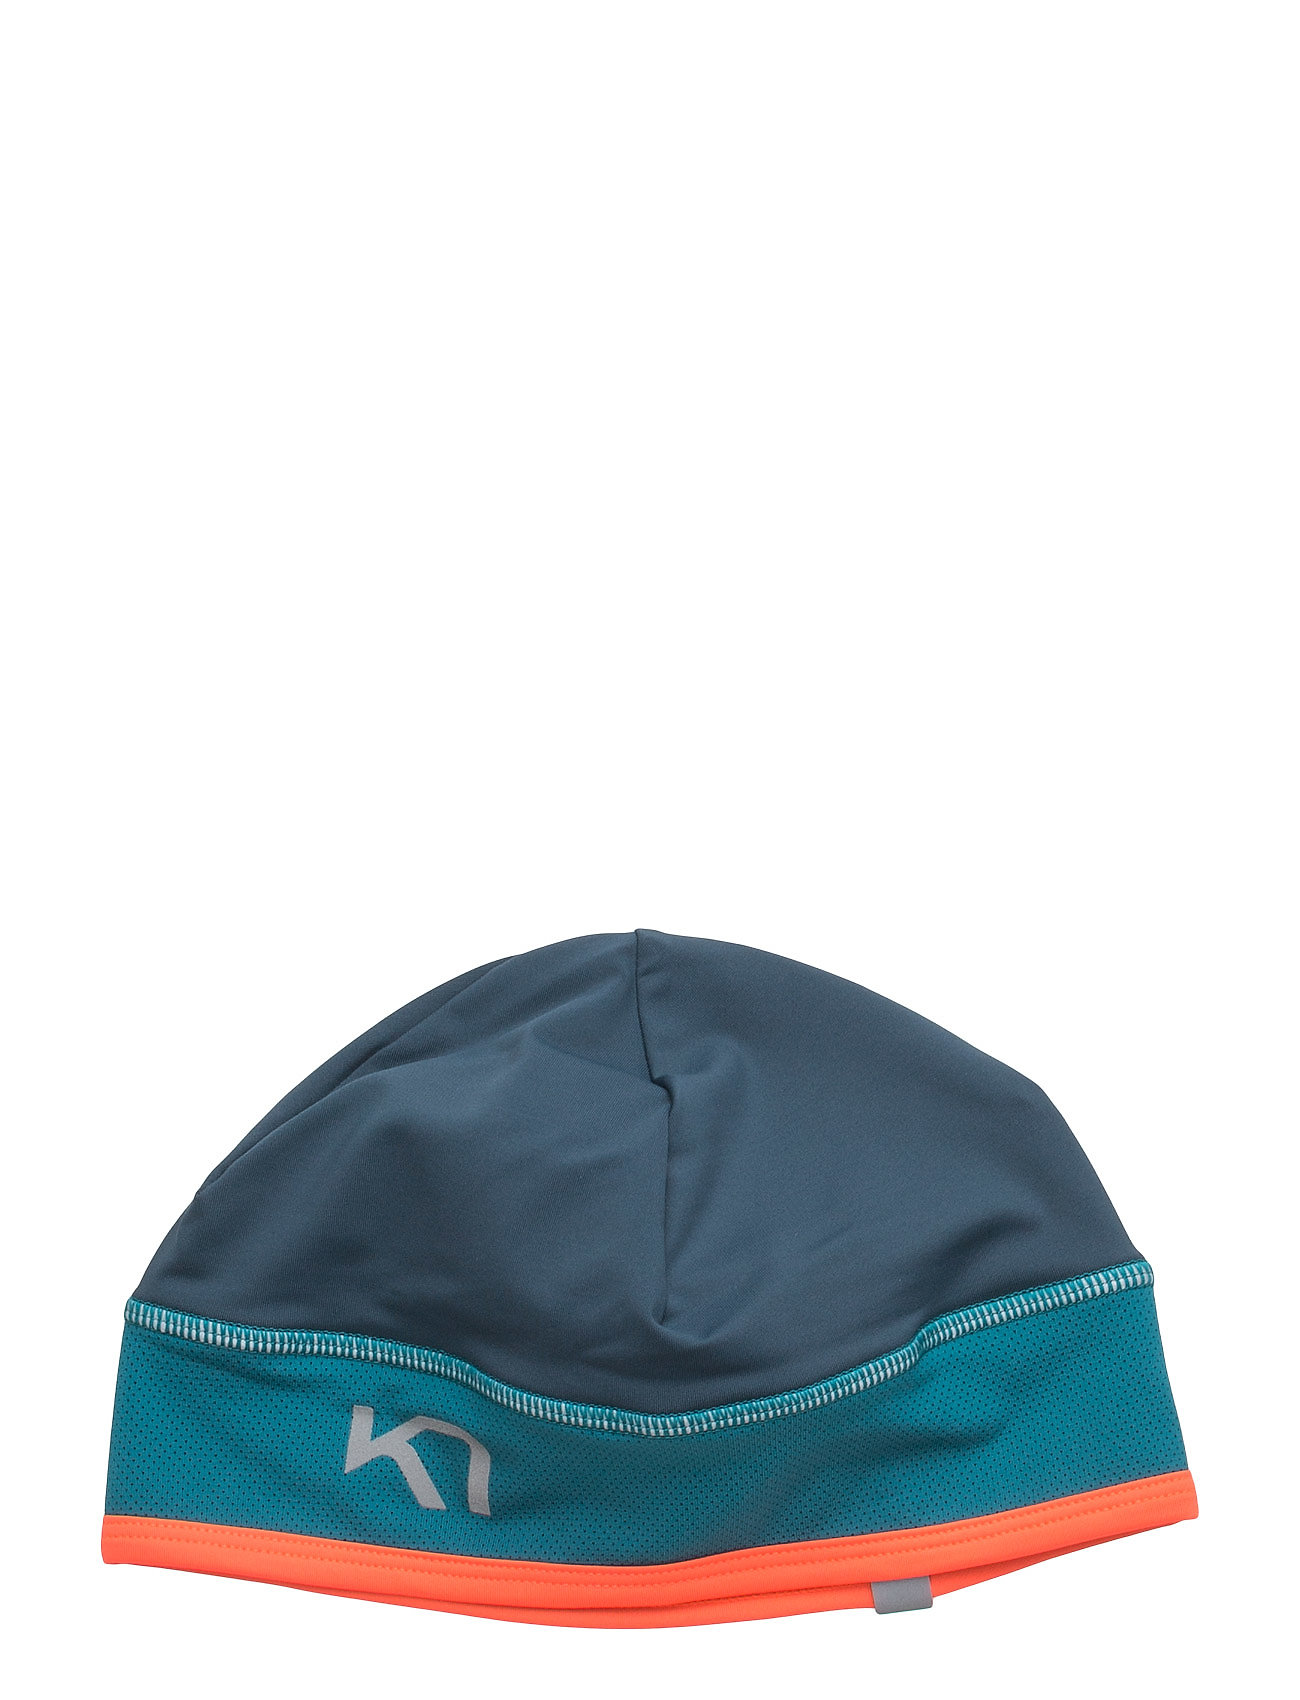 21c7dd521 Kari Traa Nina Beanie (Nsea), (10 €) | Large selection of outlet ...